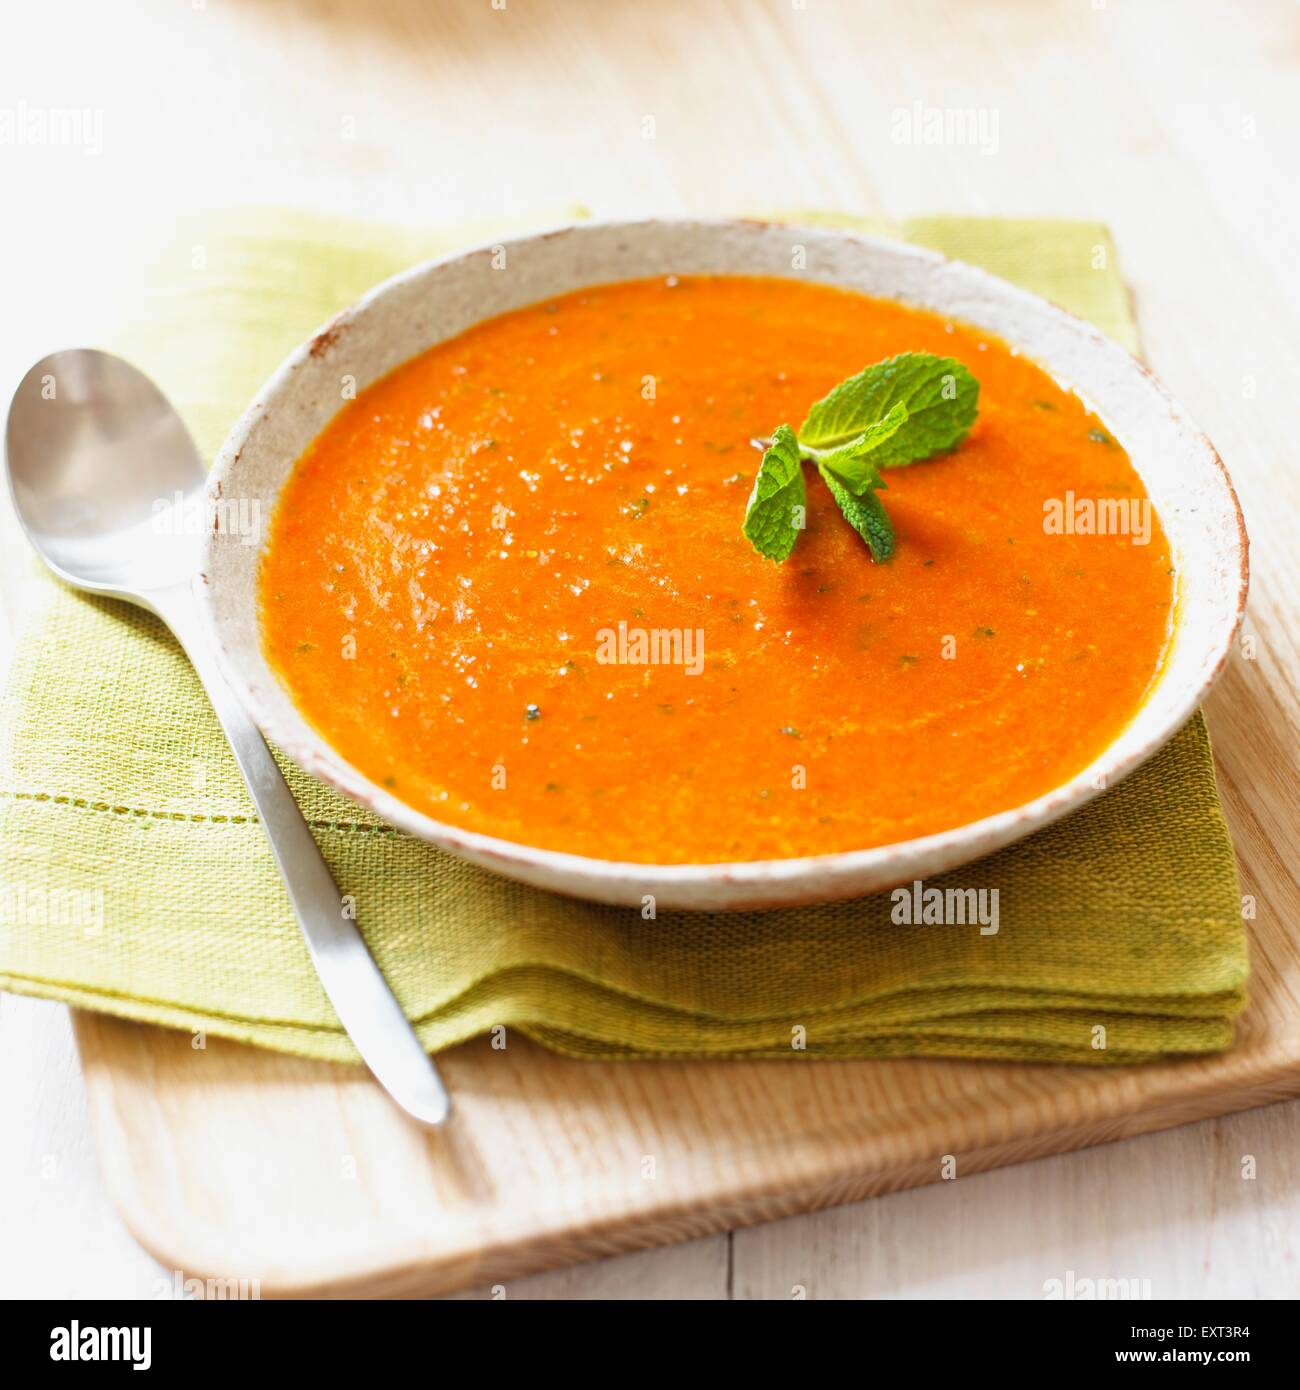 Bowl of goji berry and mint soup, with spoon and napkin - Stock Image